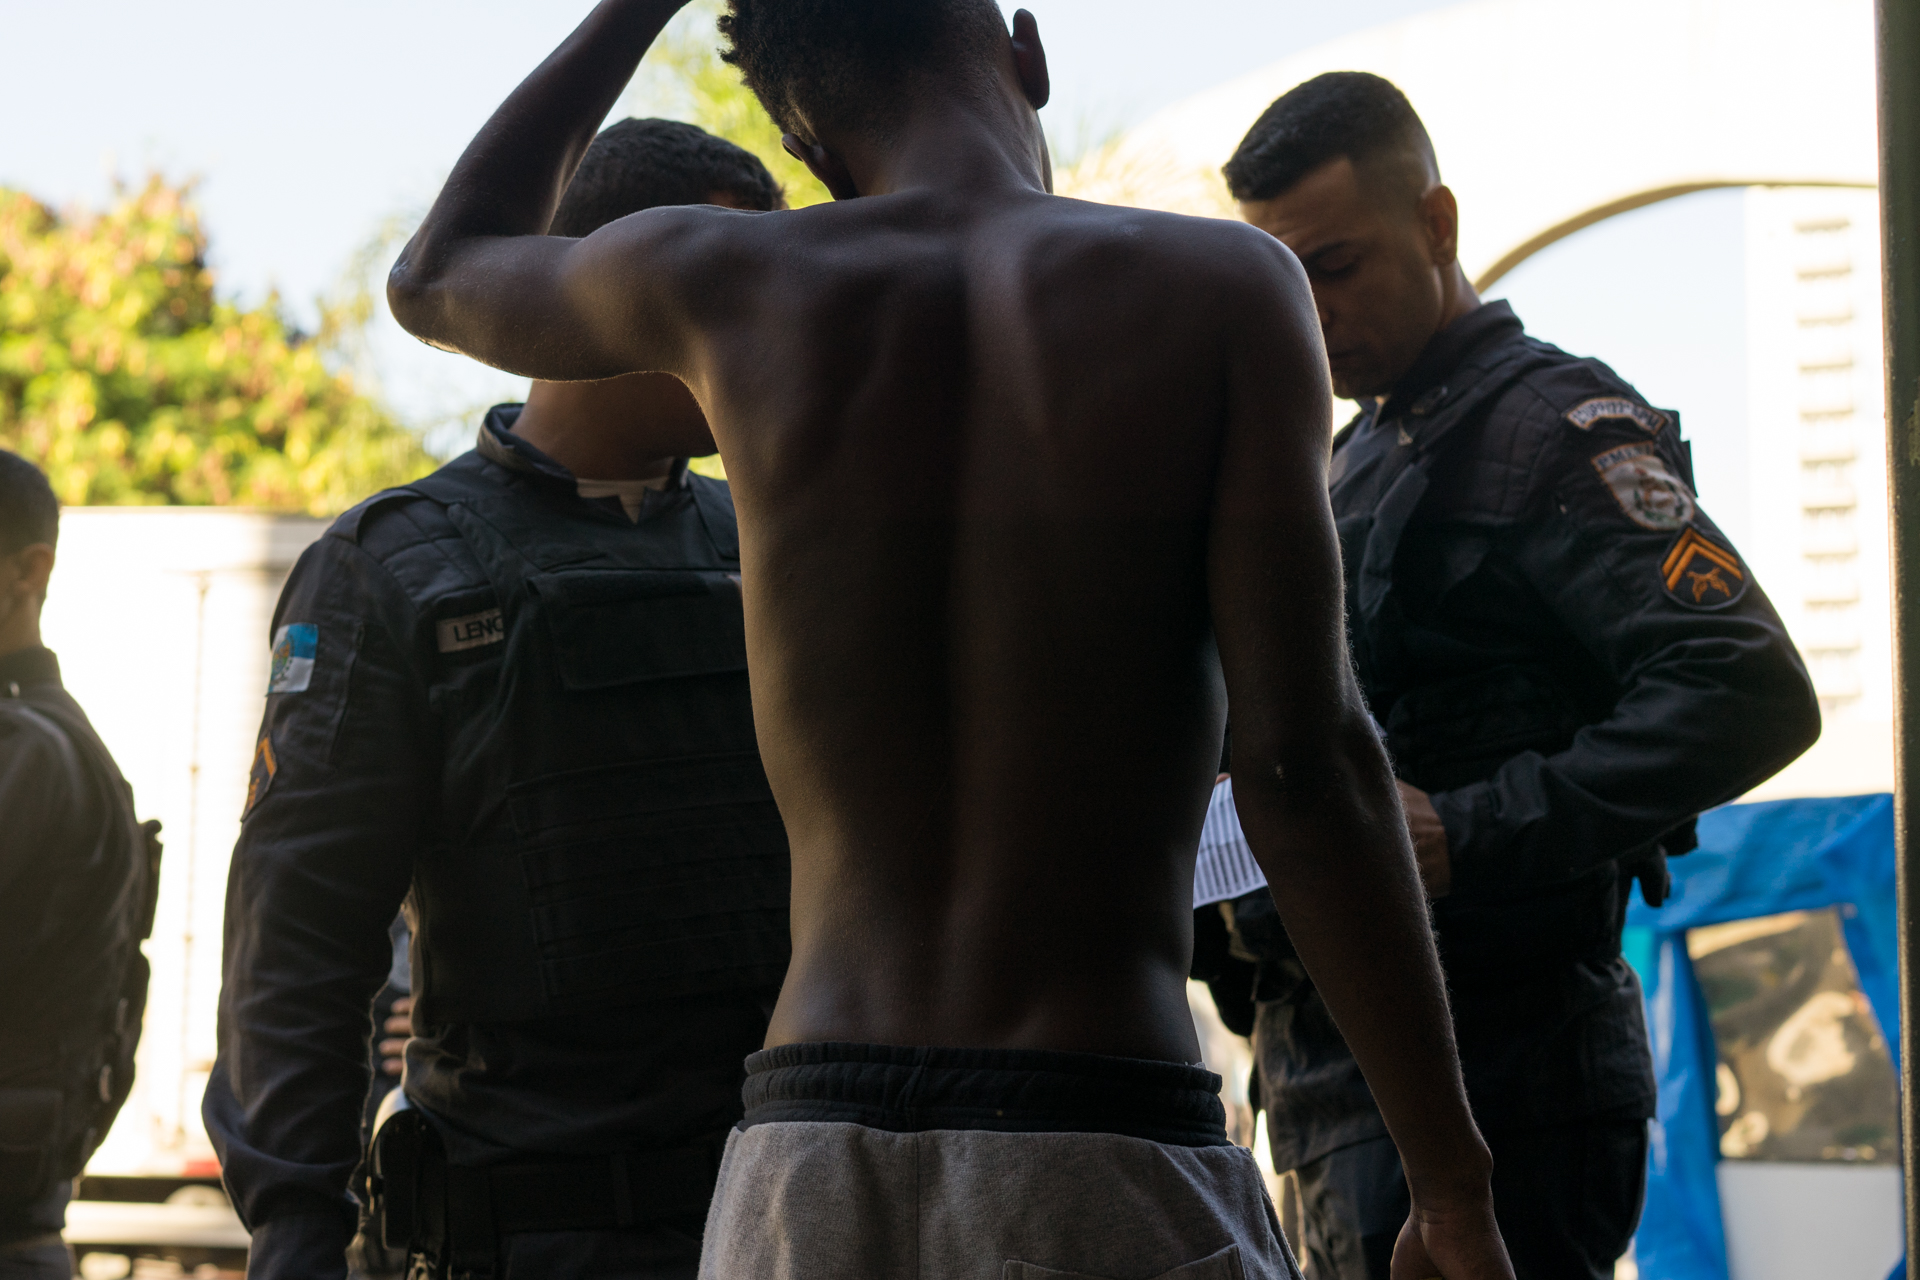 Police question a young man after he is unable to provide identification, Saturday, March 24, 2018, in Rio de Janeiro.